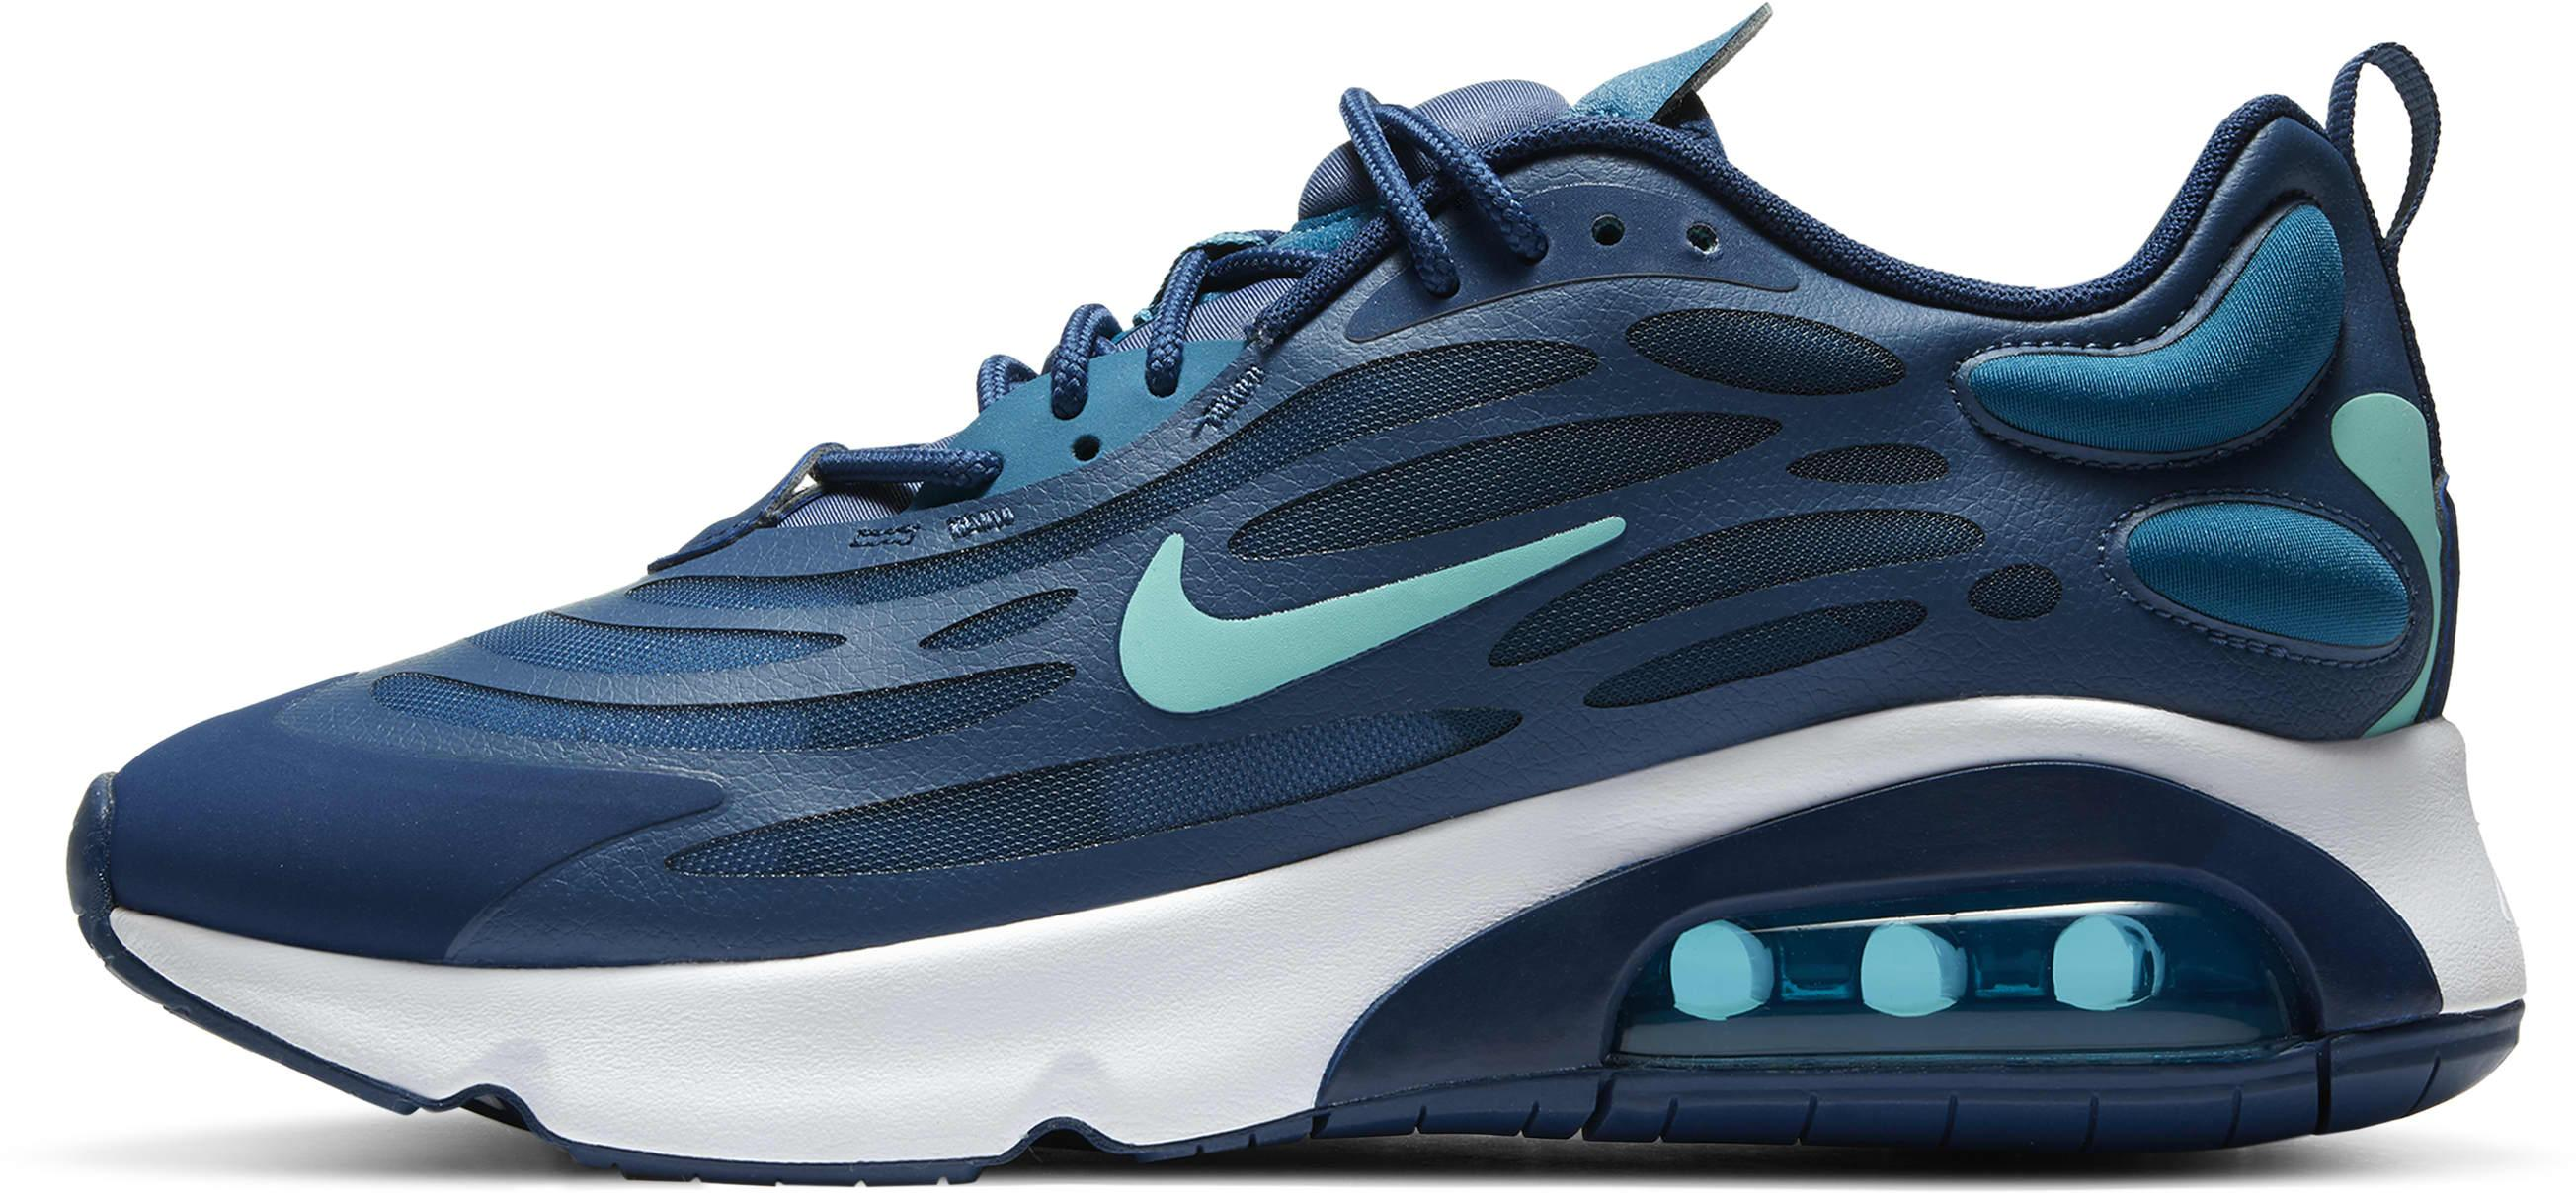 Nike Air Max Exosense Mystic Navy/Coastal Blue/Green Abyss/Bleached Turquoise